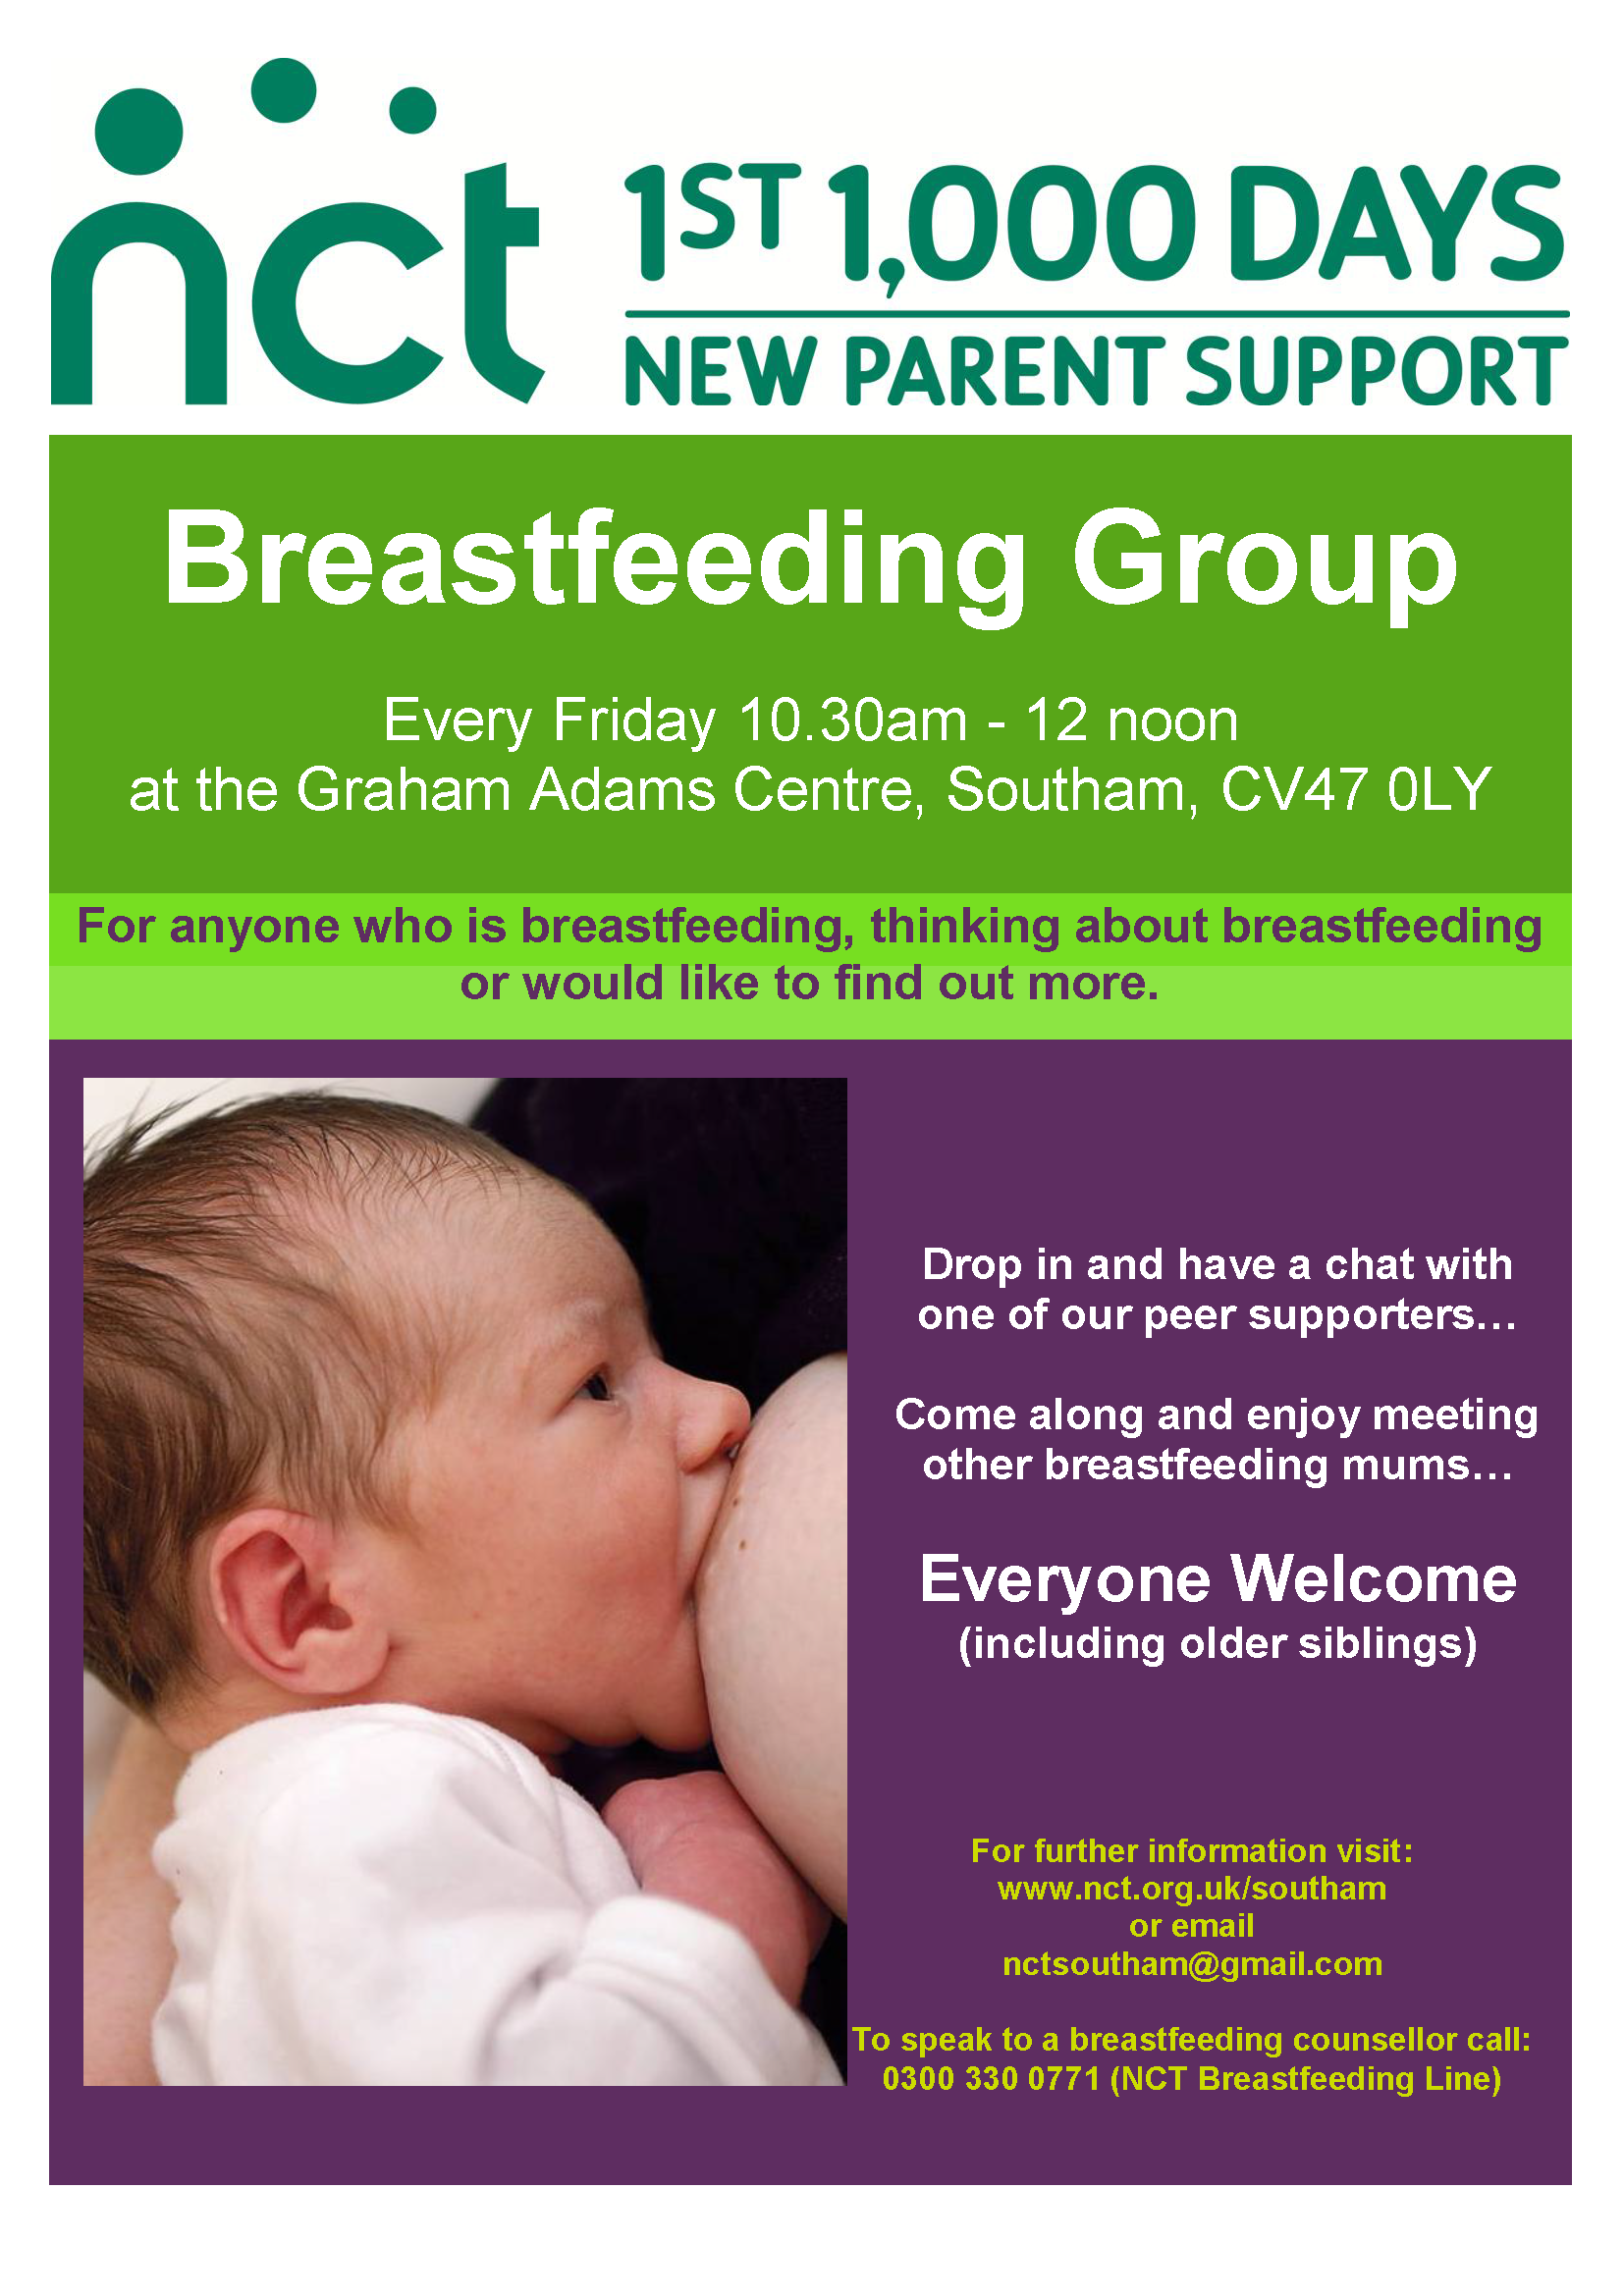 NCT Breastfeeding Group